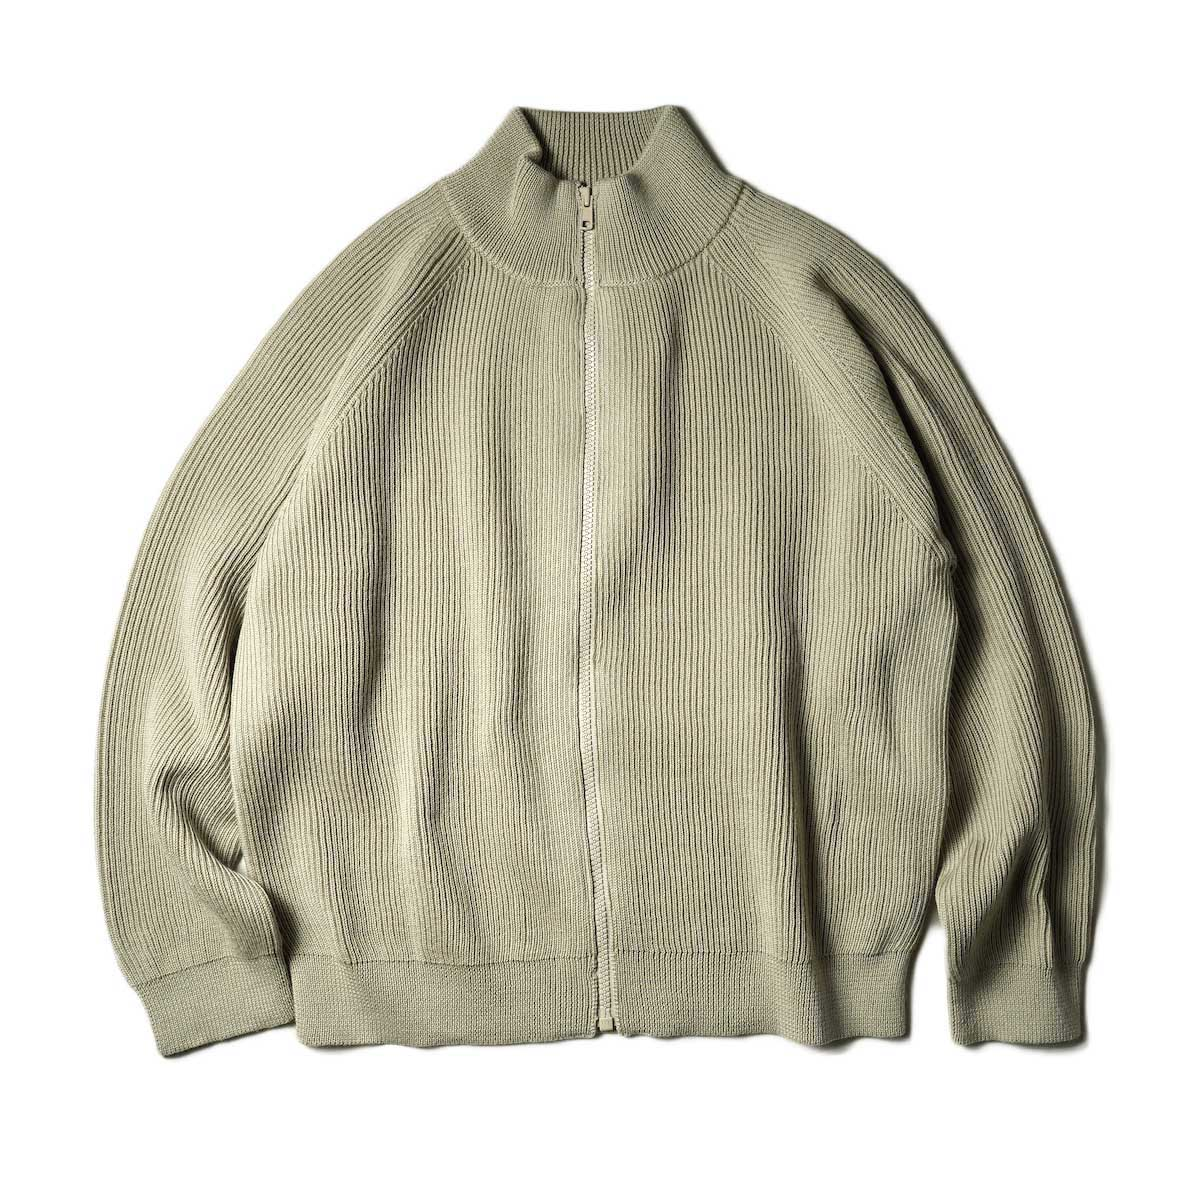 EVCON / DRIVERS SWEATER (Oatmeal) 正面